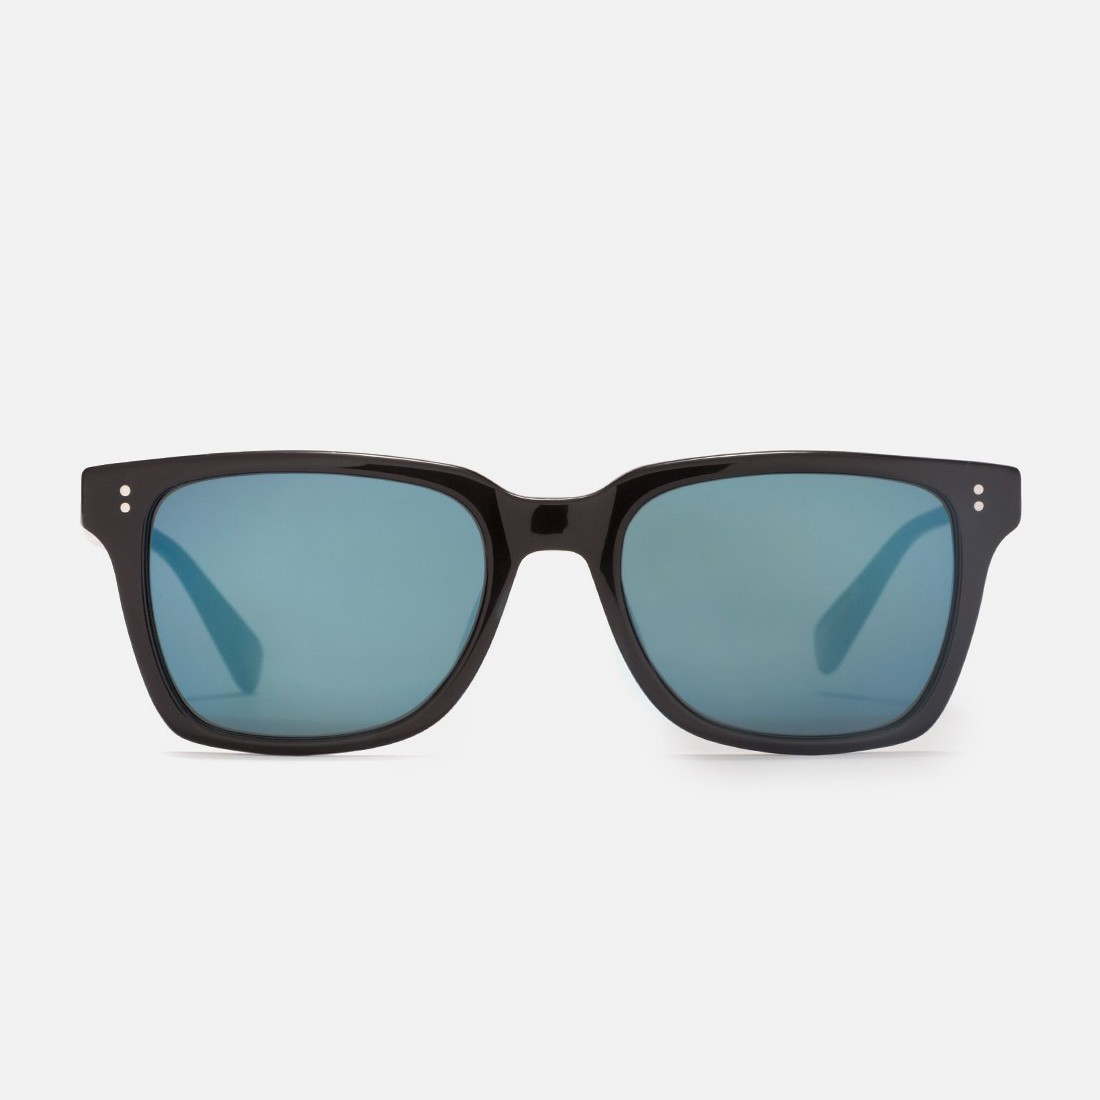 Gafas de sol Angelo Black   Blue mirror 1b71bfb725f